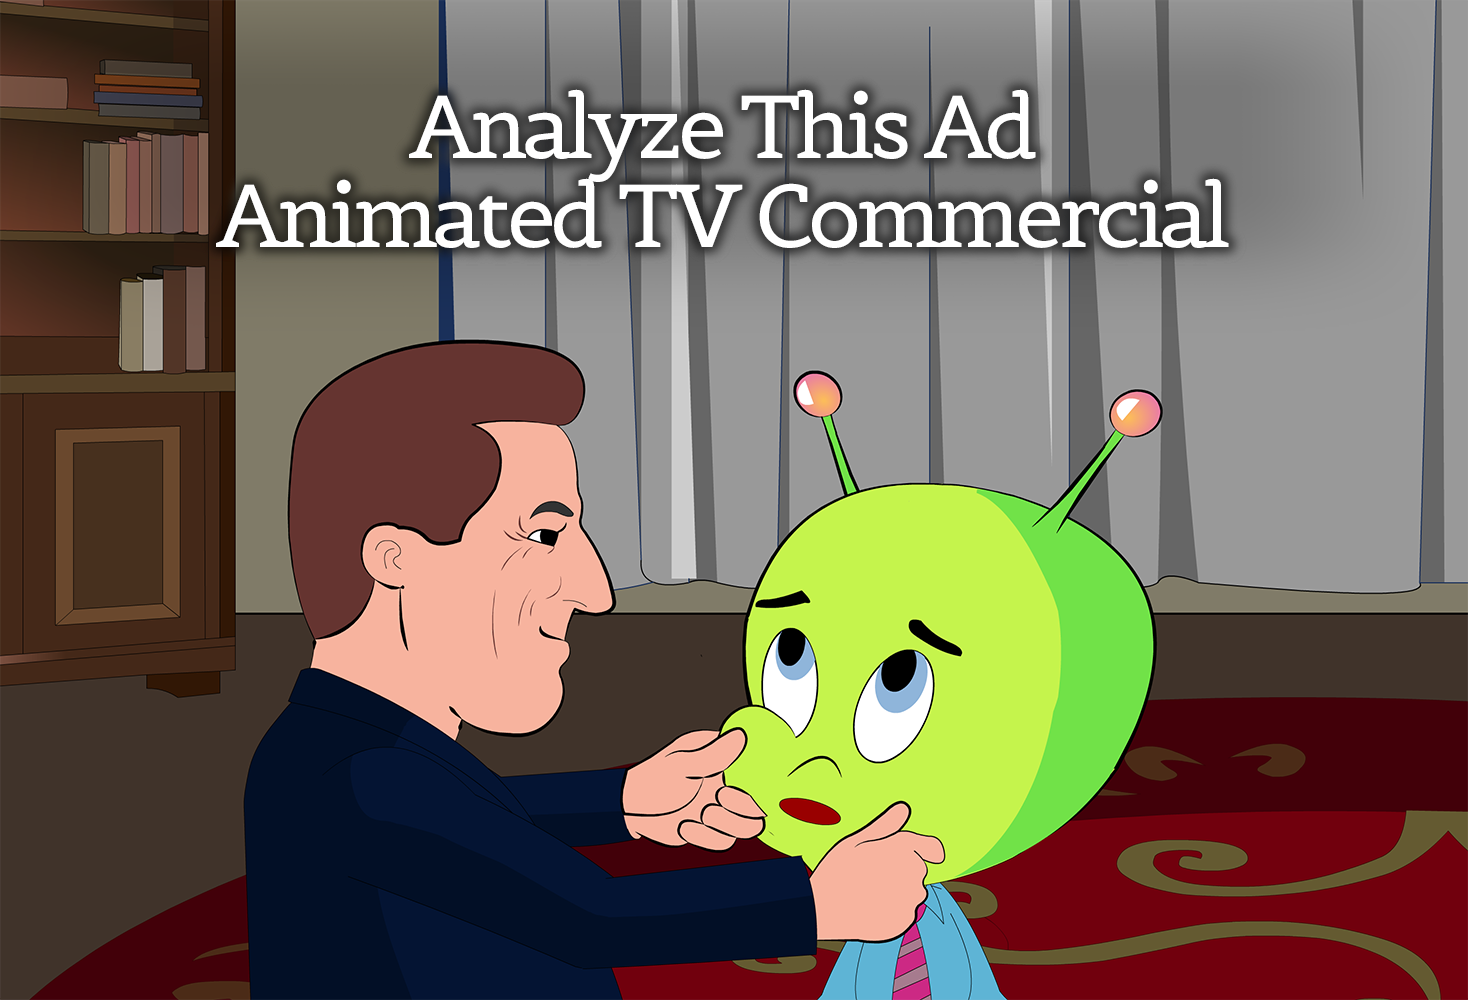 This Animated TV Commercial